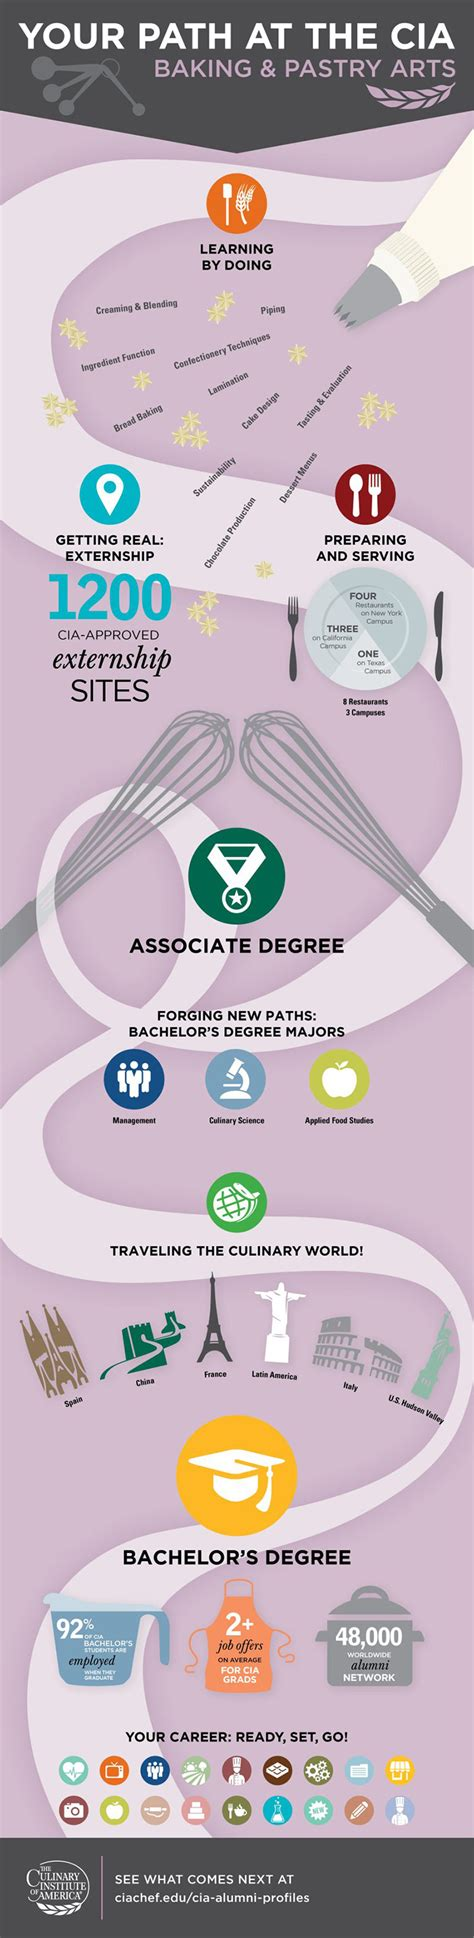 Baking Career Information by The Culinary Institute Of America Path To A Baking Pastry Career Infographic